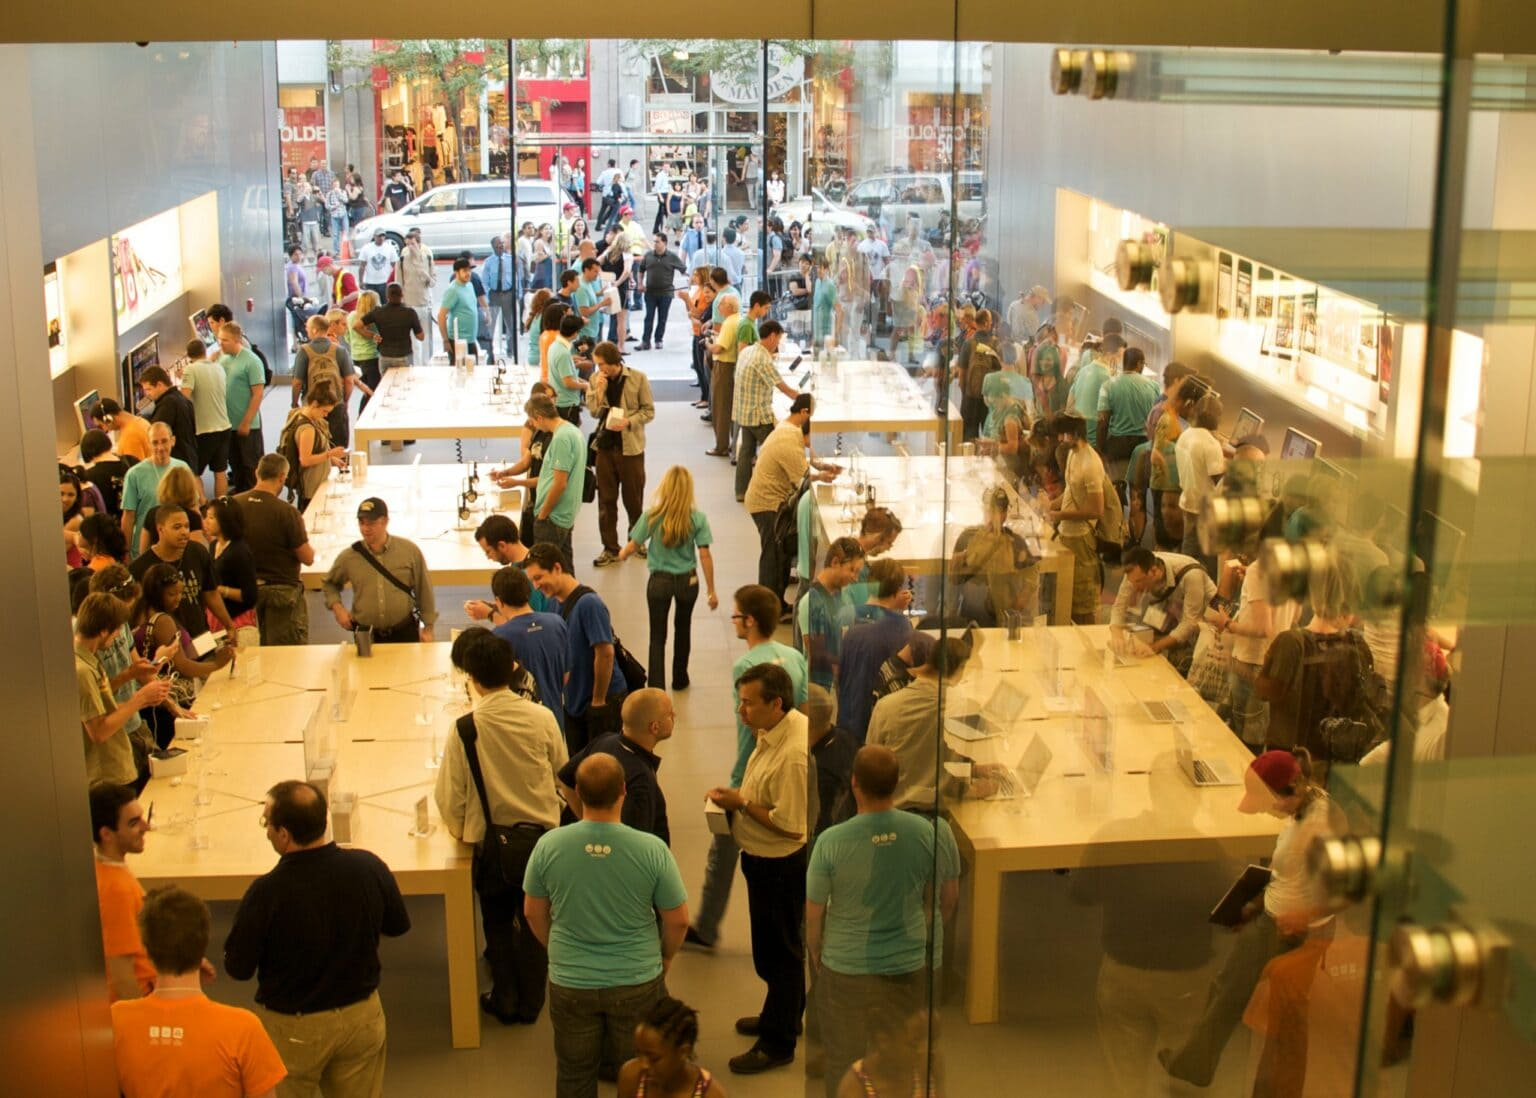 Apple Sainte-Catherine closes due to COVID-19. Here's the store during happier, less socially distanced times.